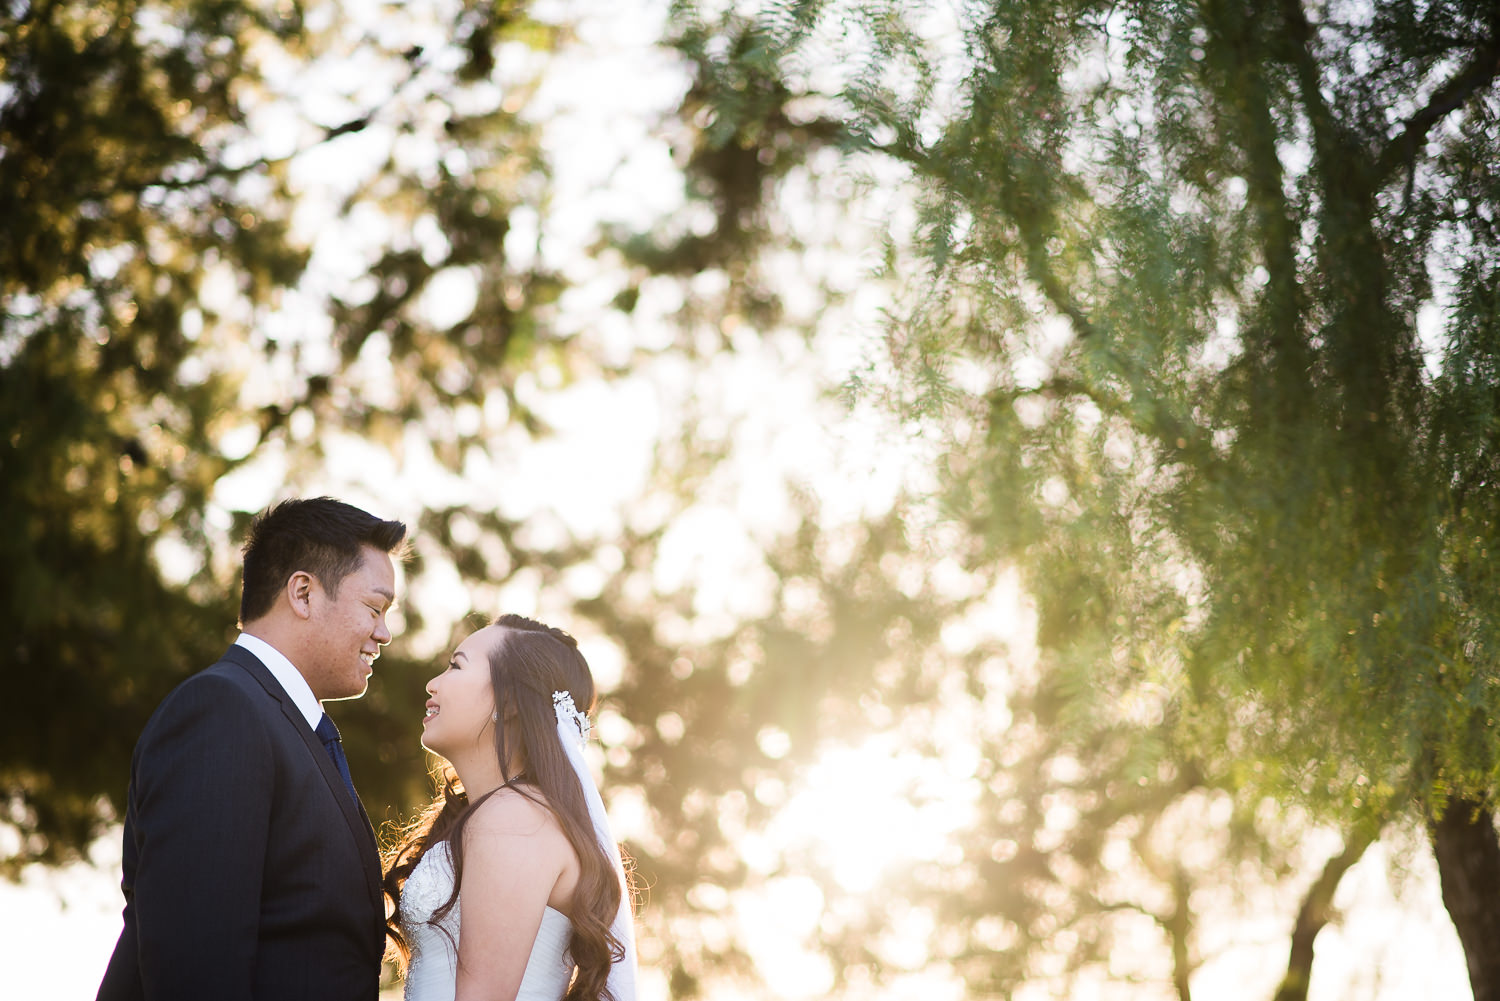 los-angeles-engagement-wedding-photography-25.jpg